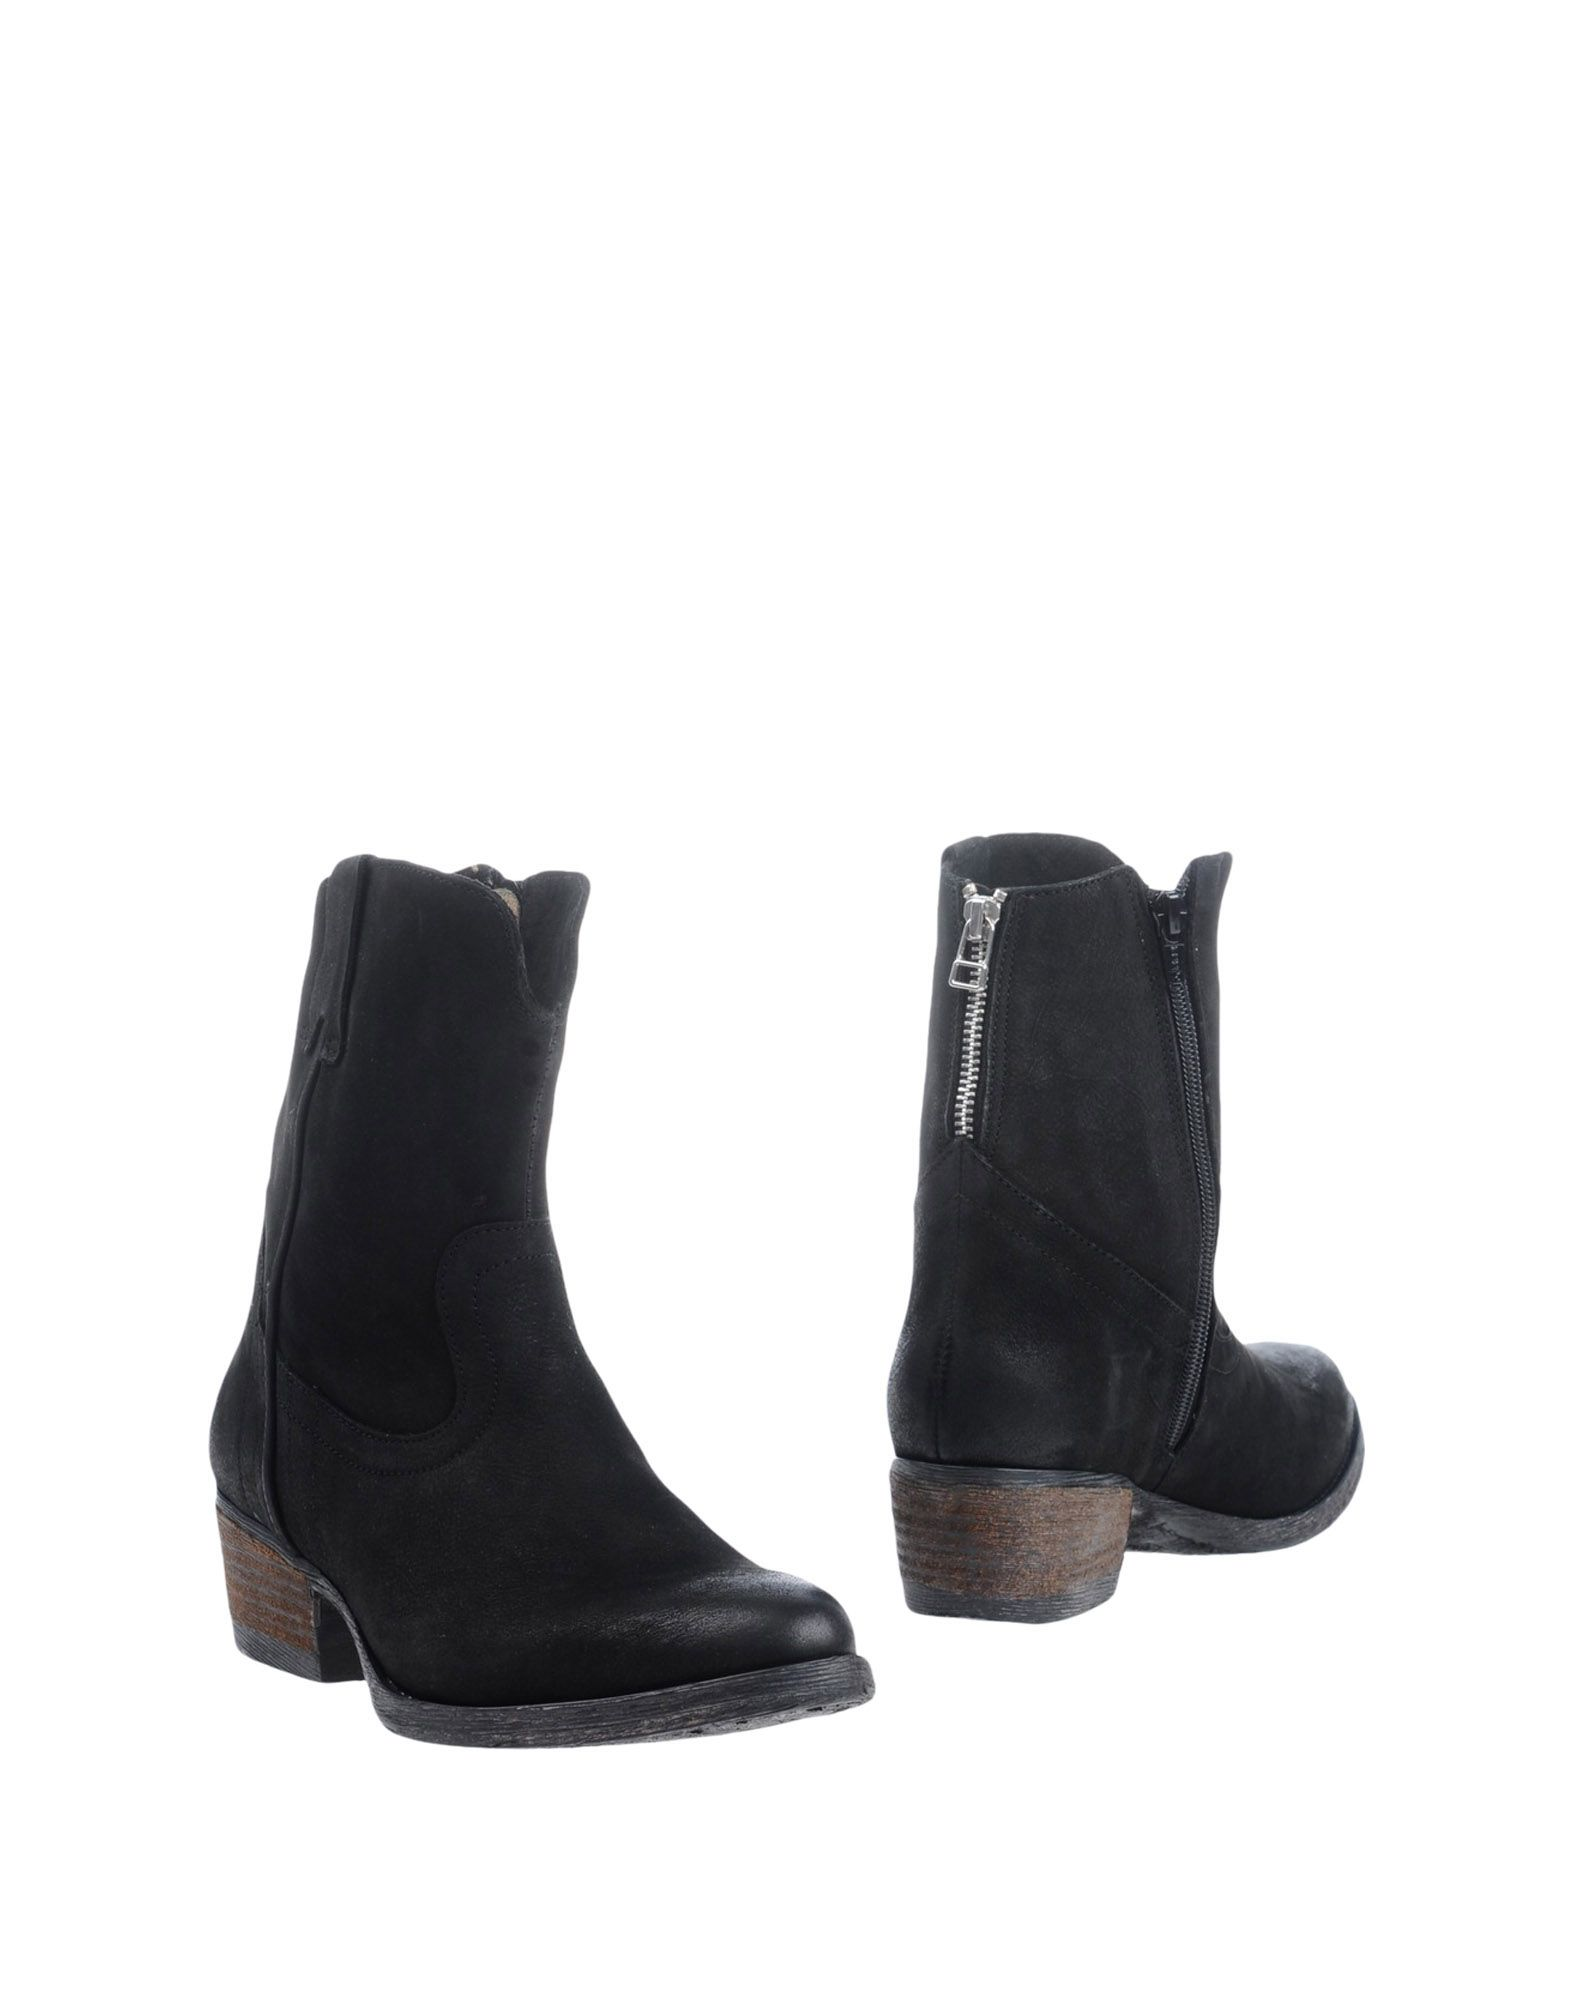 Bottine Manas Femme - Bottines Manas sur